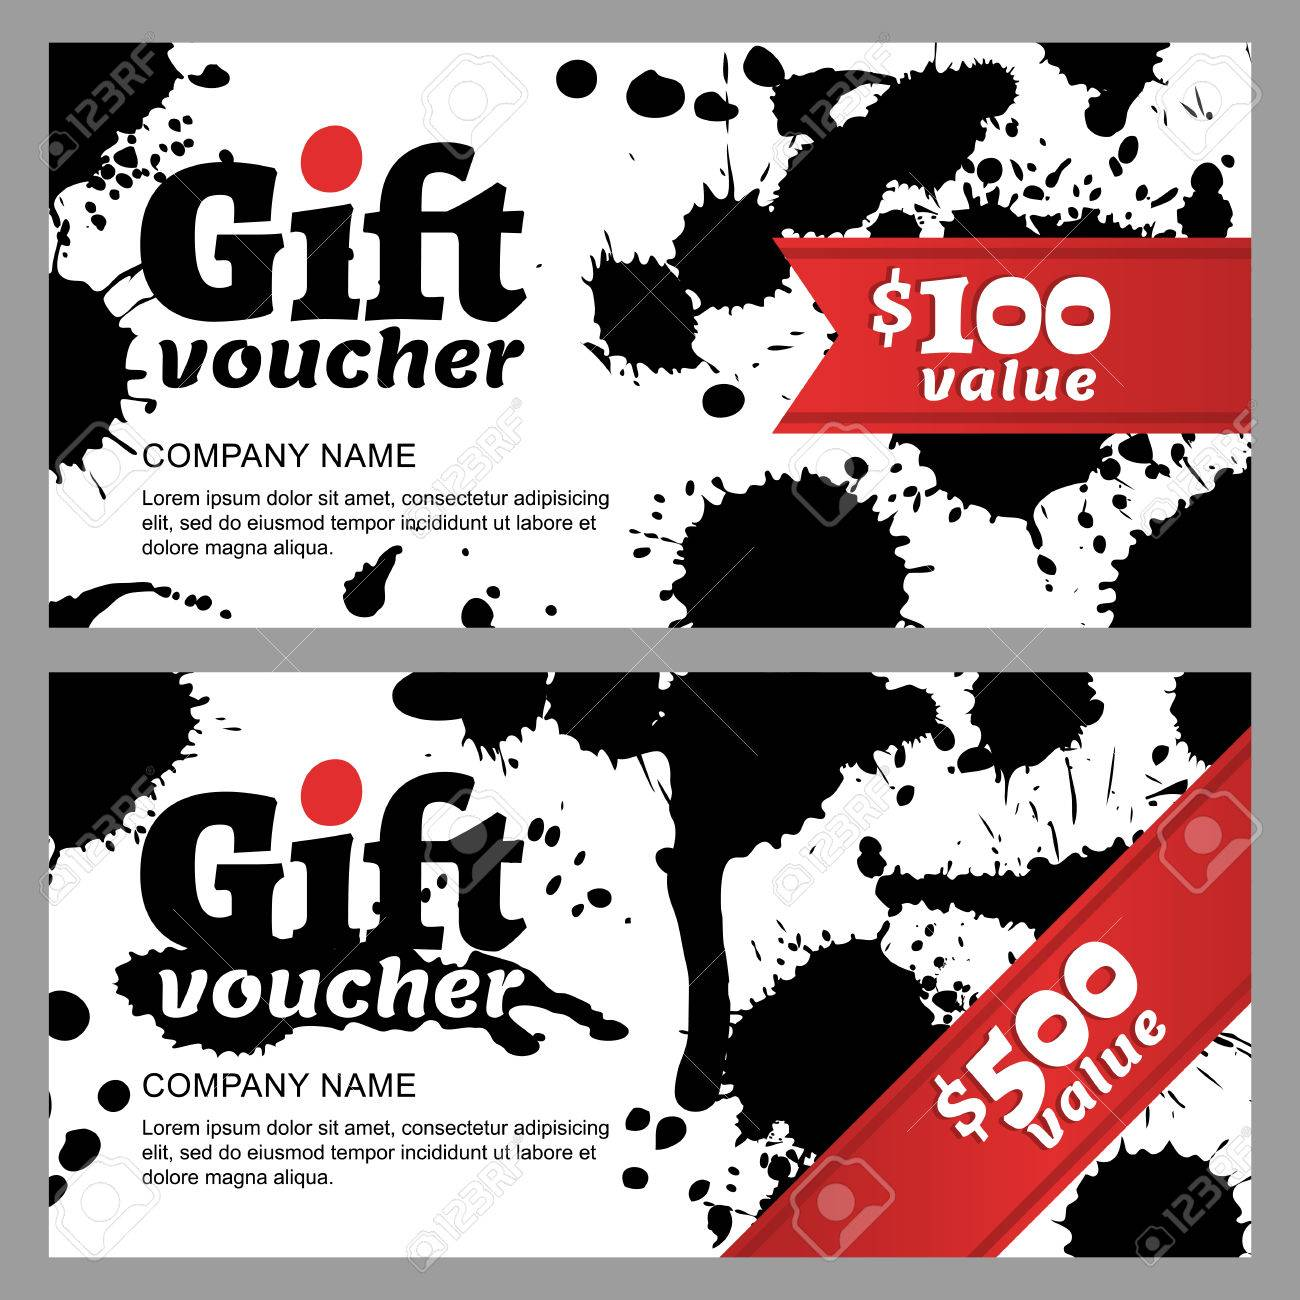 Vector gift voucher with black ink splashes business card template business card template abstract watercolor background gift card design grunge illustration concept for boutique fashion shop flyer banner design reheart Choice Image